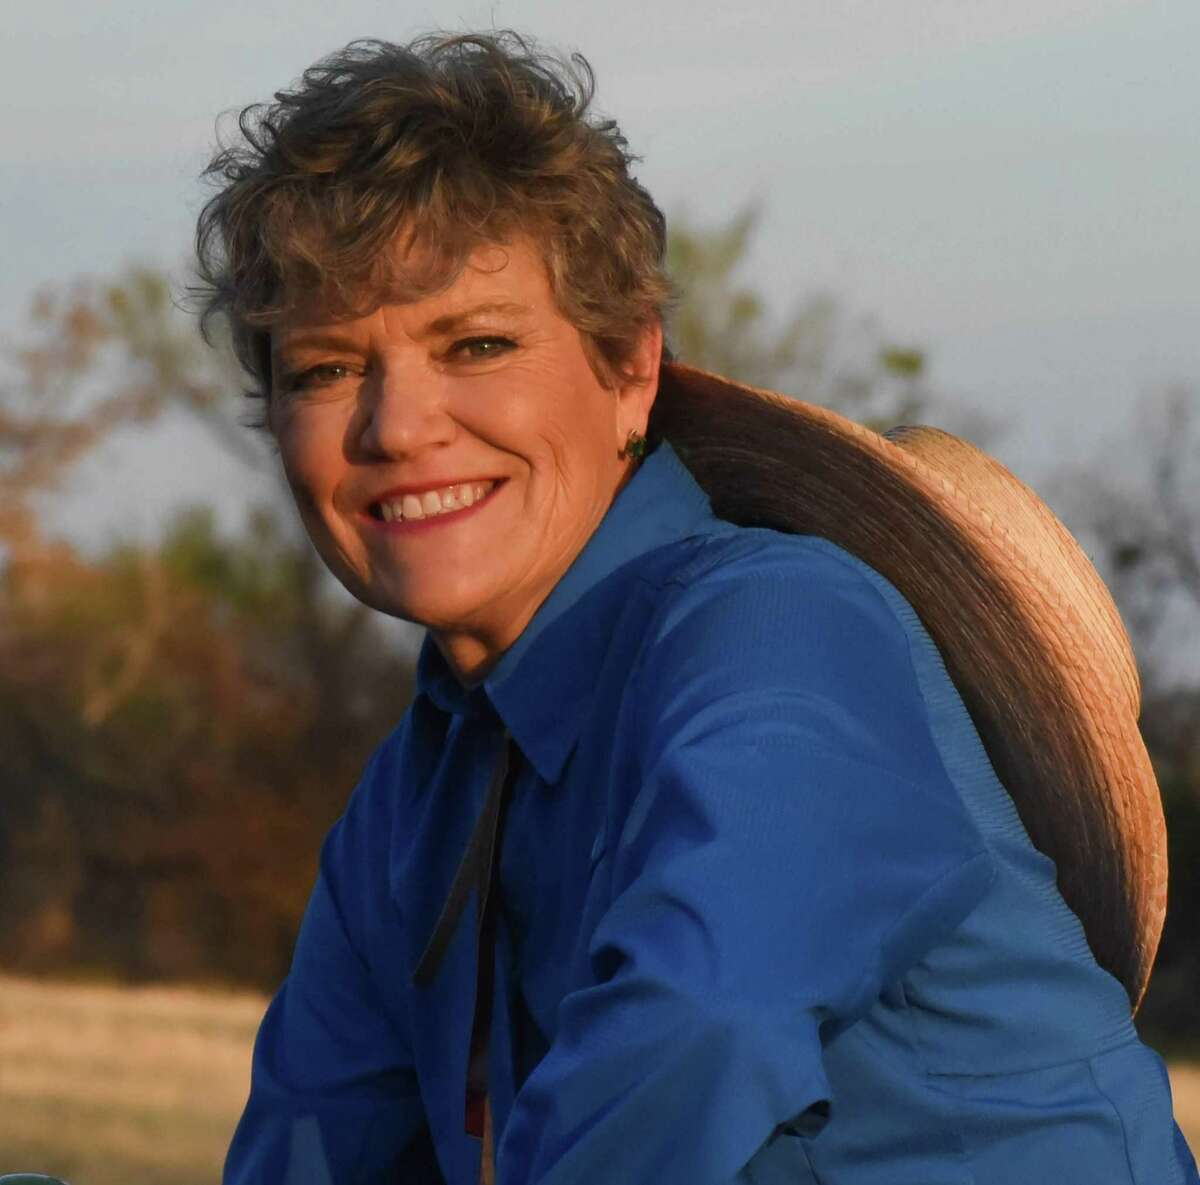 Kim Olson, (D), candidate for Agriculture Commissioner.